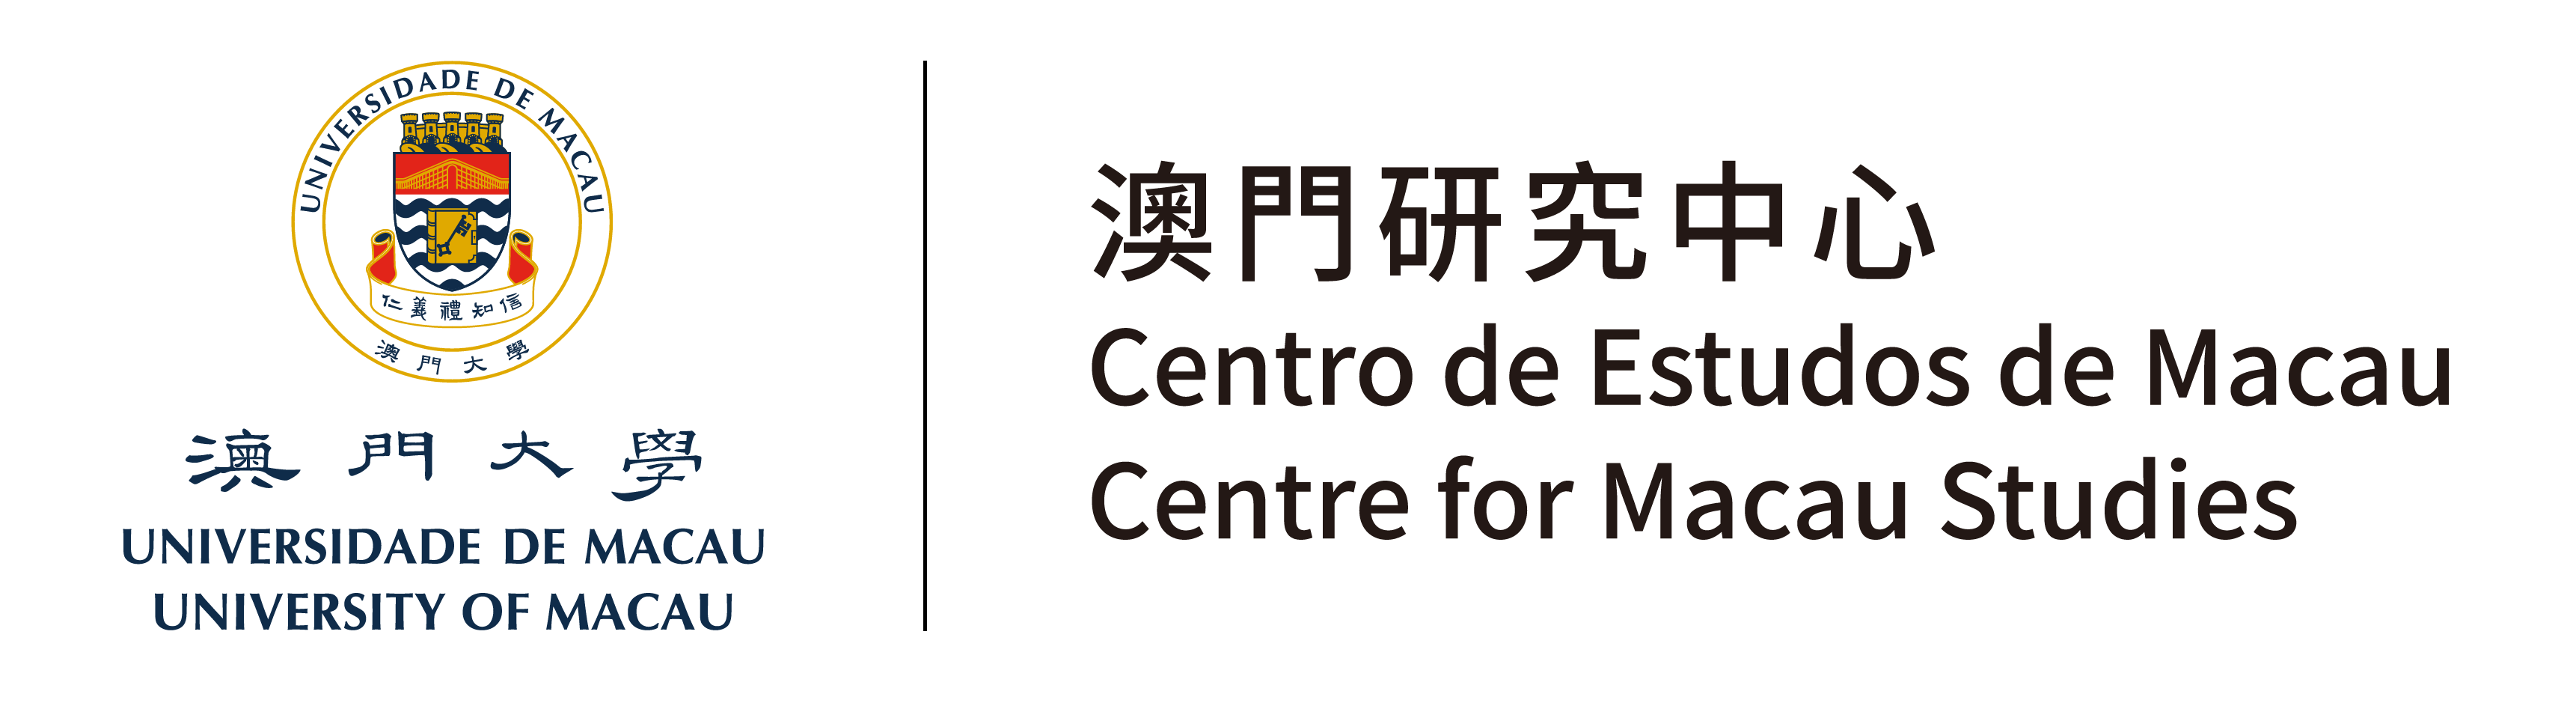 Centre for Macau Studies | University of Macau Logo